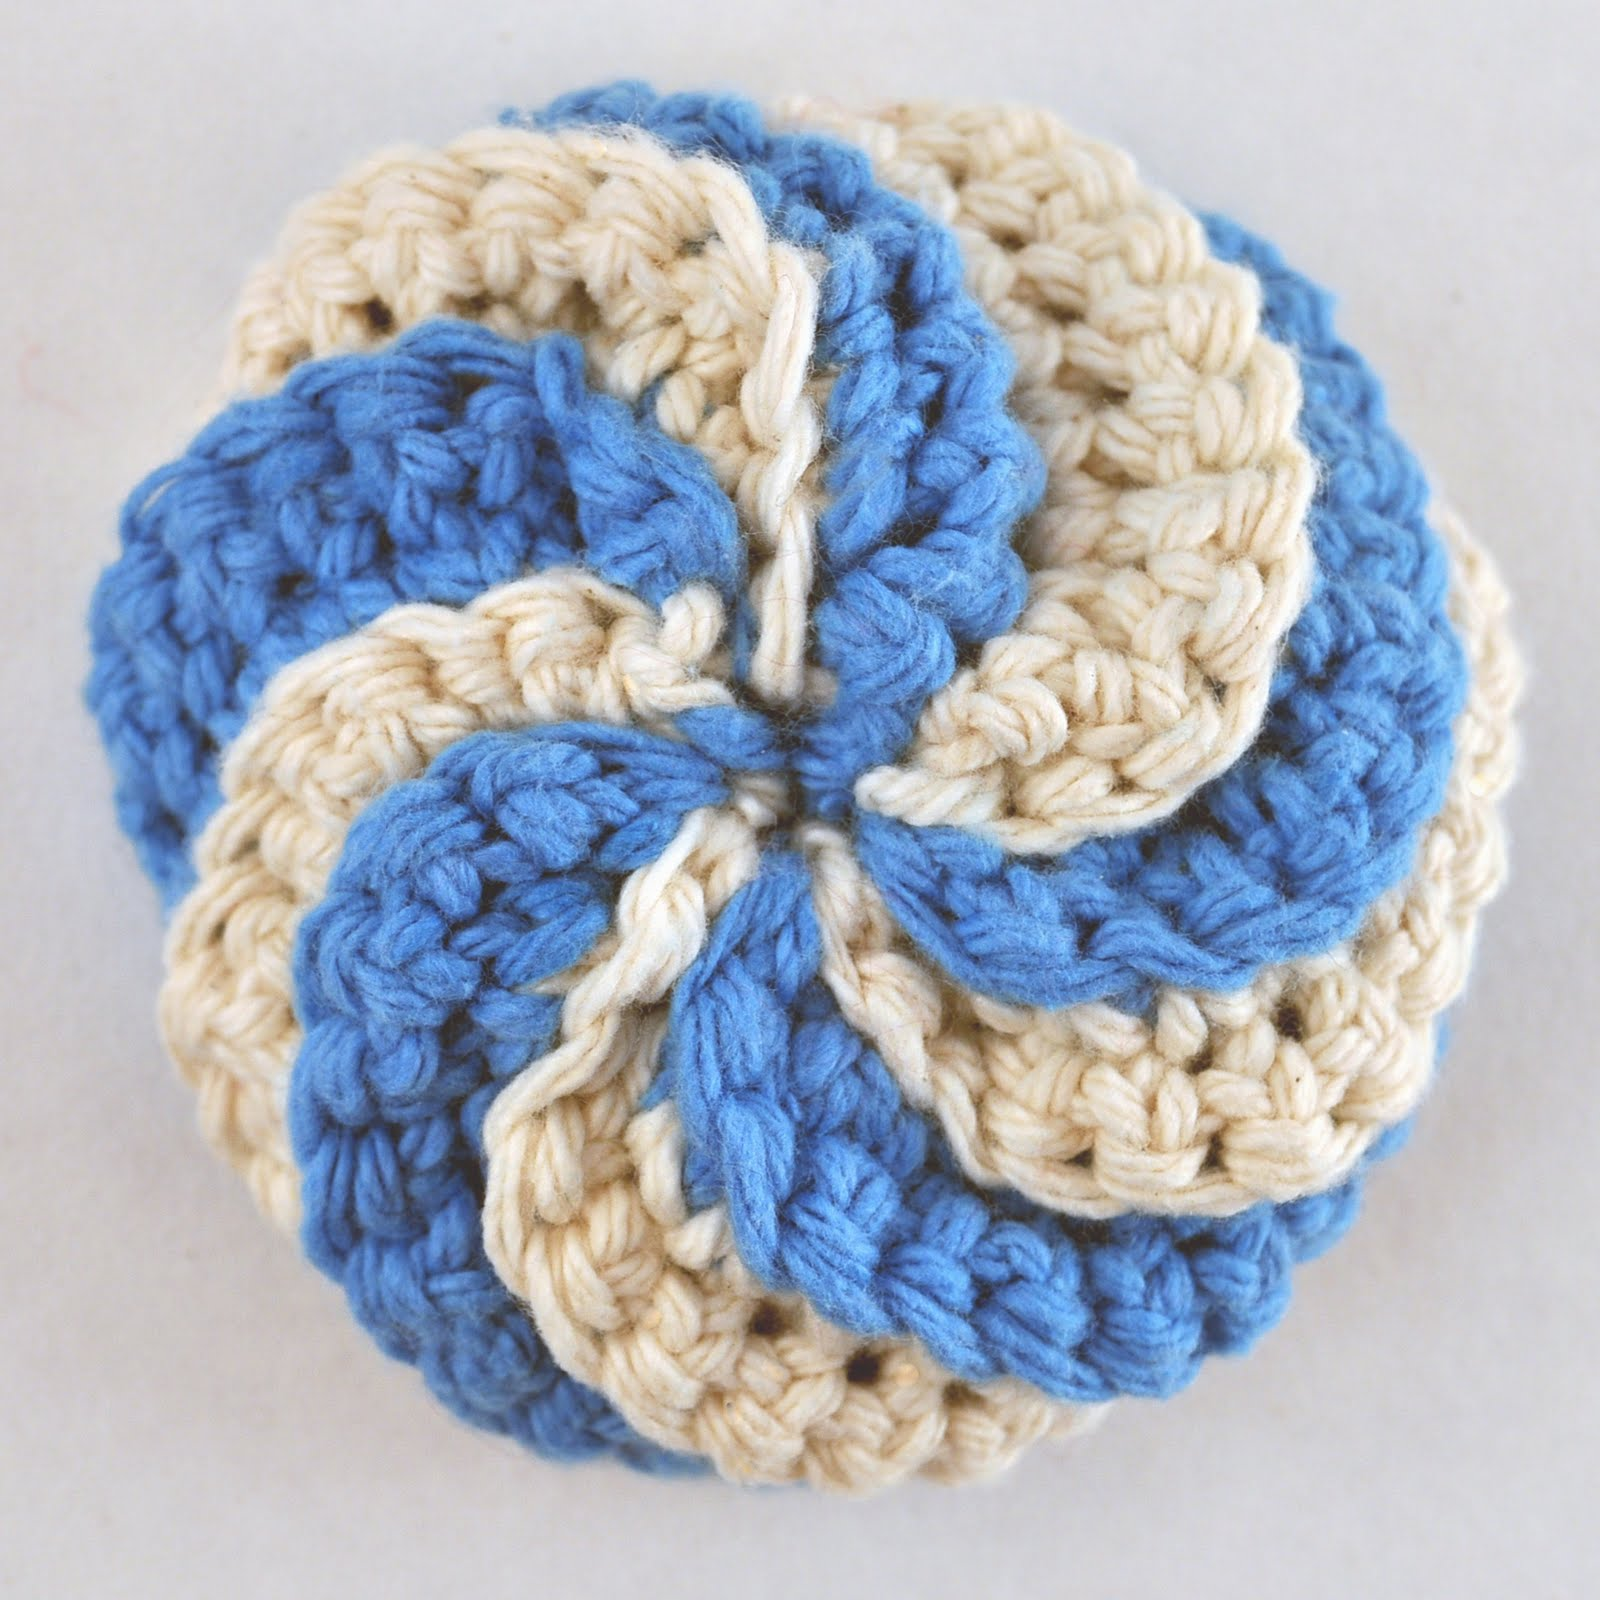 Crochet Patterns Scrubbies : CrochetBeautyShoppe: Crochet Tawashi Scrubbies